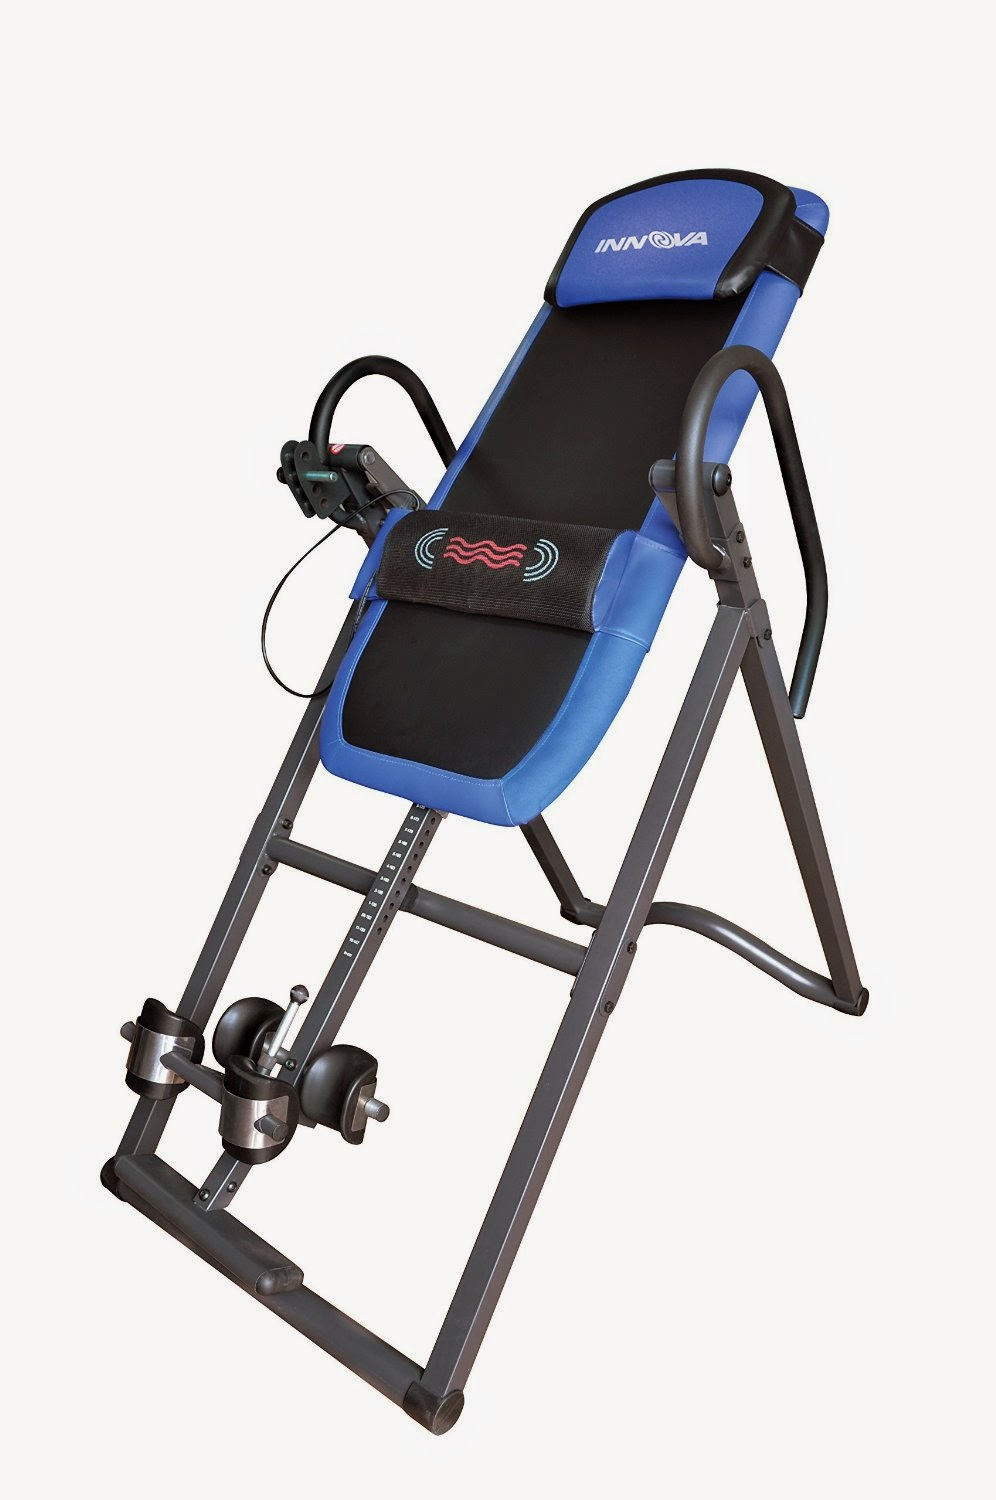 Incroyable Innova ITM4800 Advanced Heat And Massage Therapeutic Inversion Therapy Table  For Back Pain Relief, Reviewed. U003eu003e